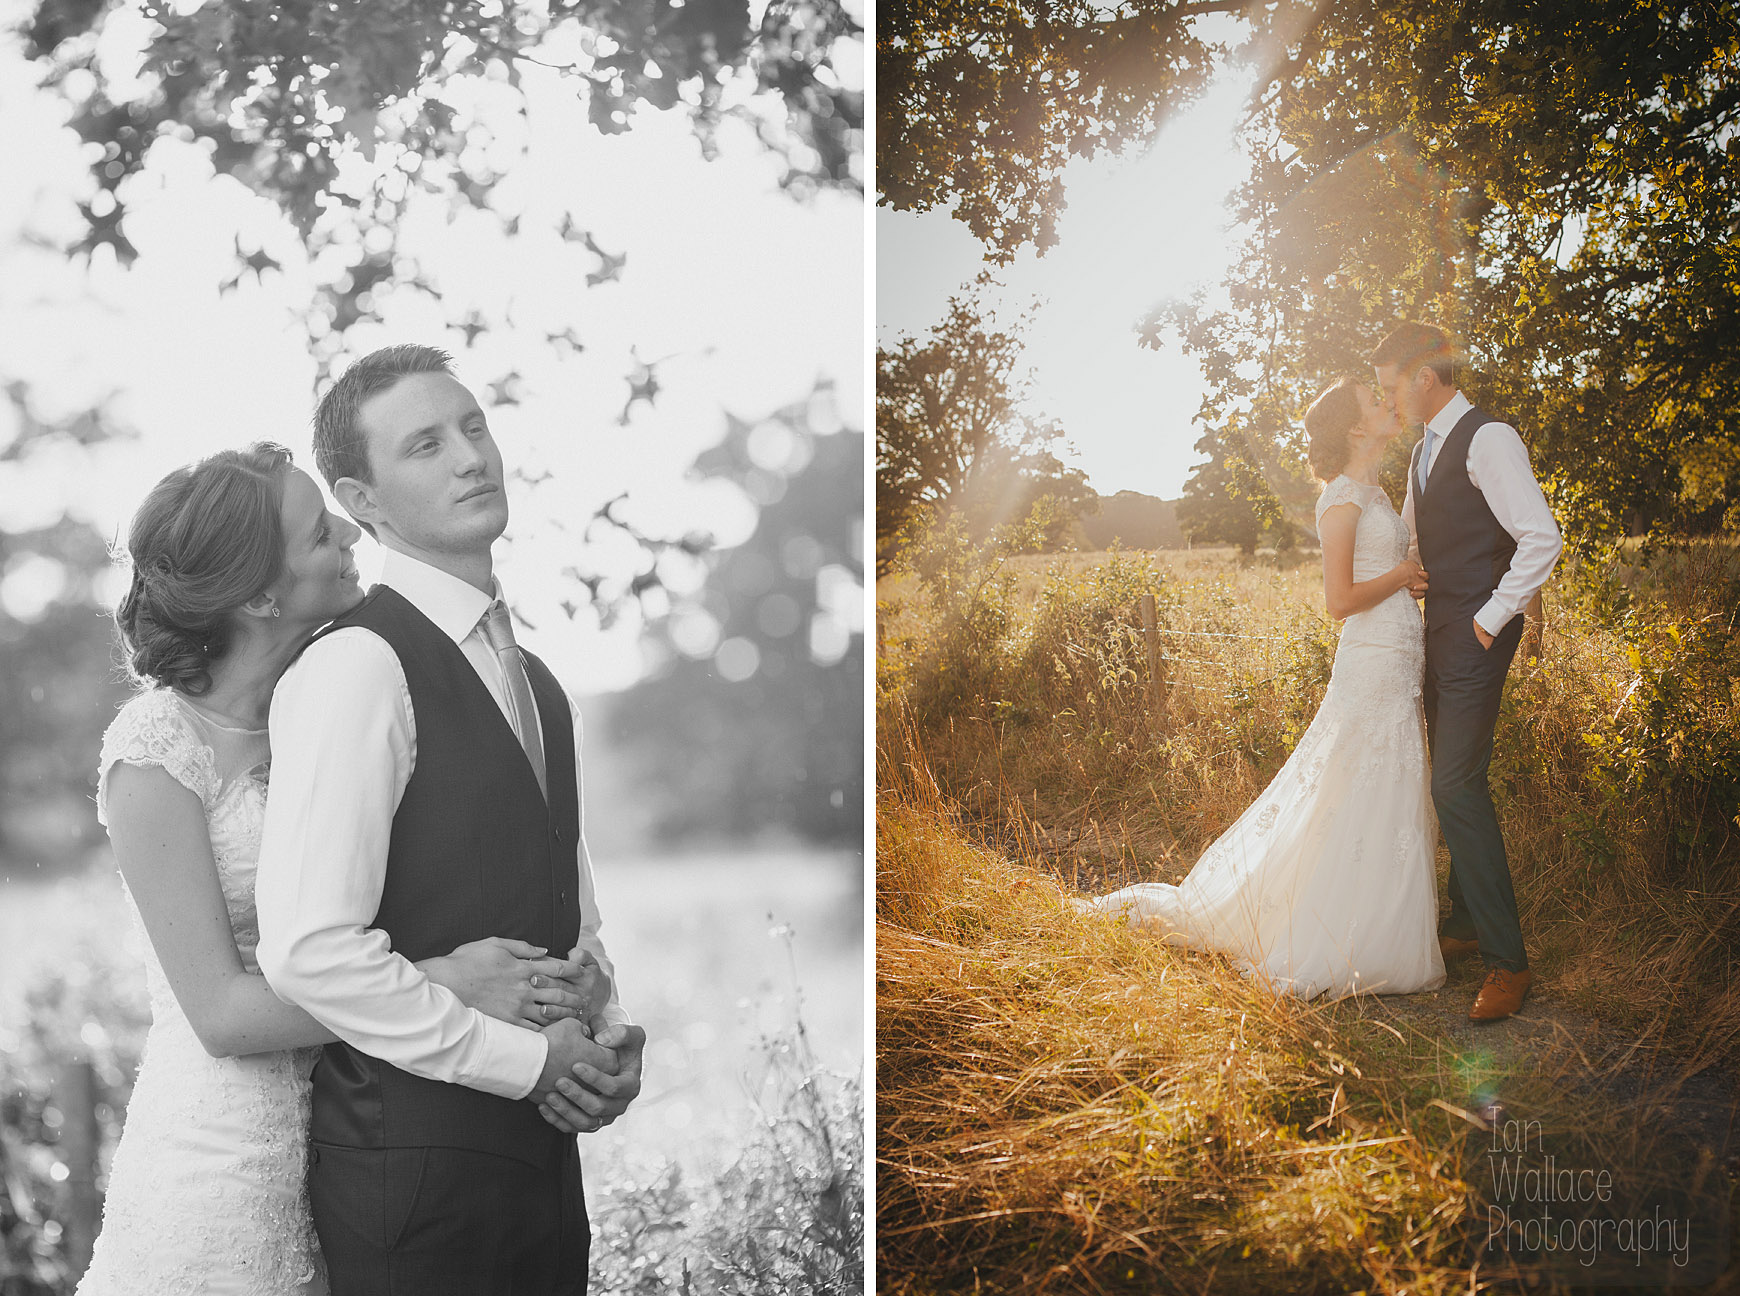 Beautiful sun drenched natural portraits of a bride and groom in Yorkshire